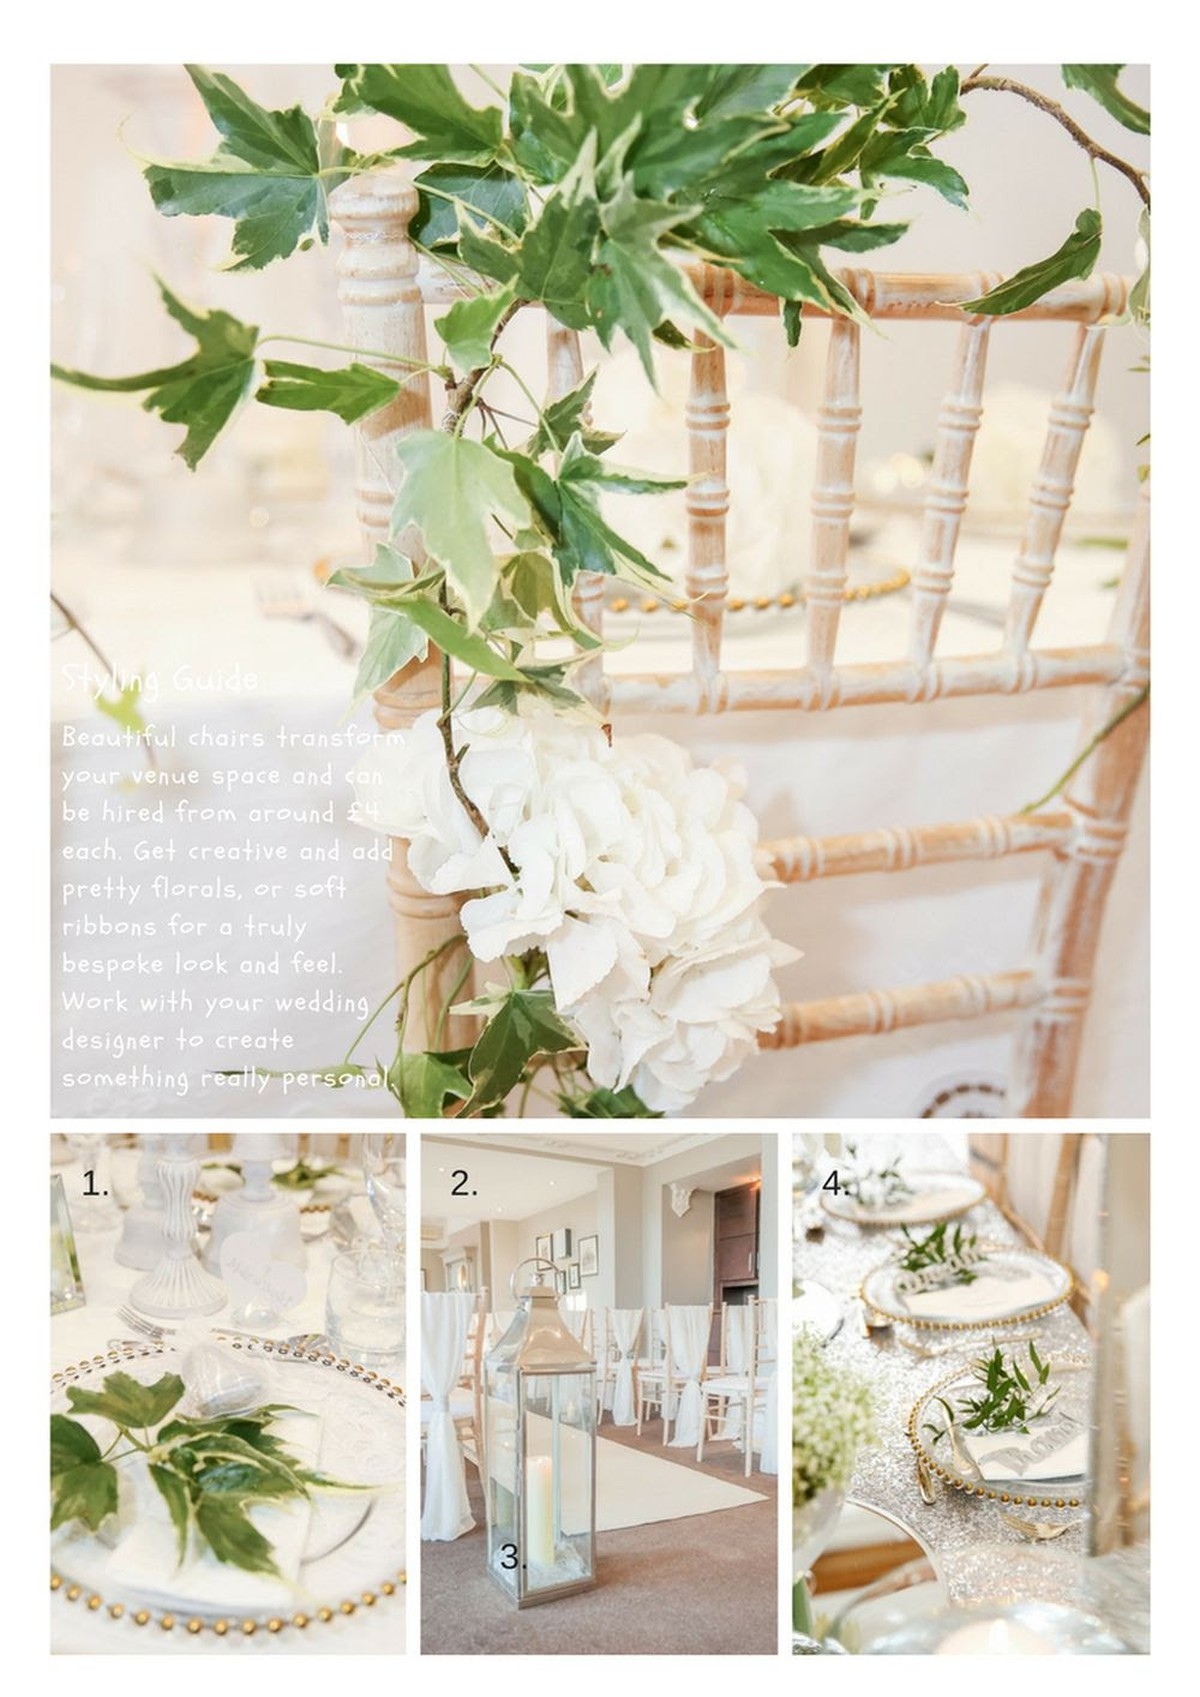 Profitable business for sale chair cover and venue decoration buy luxury wedding decor hire business junglespirit Image collections